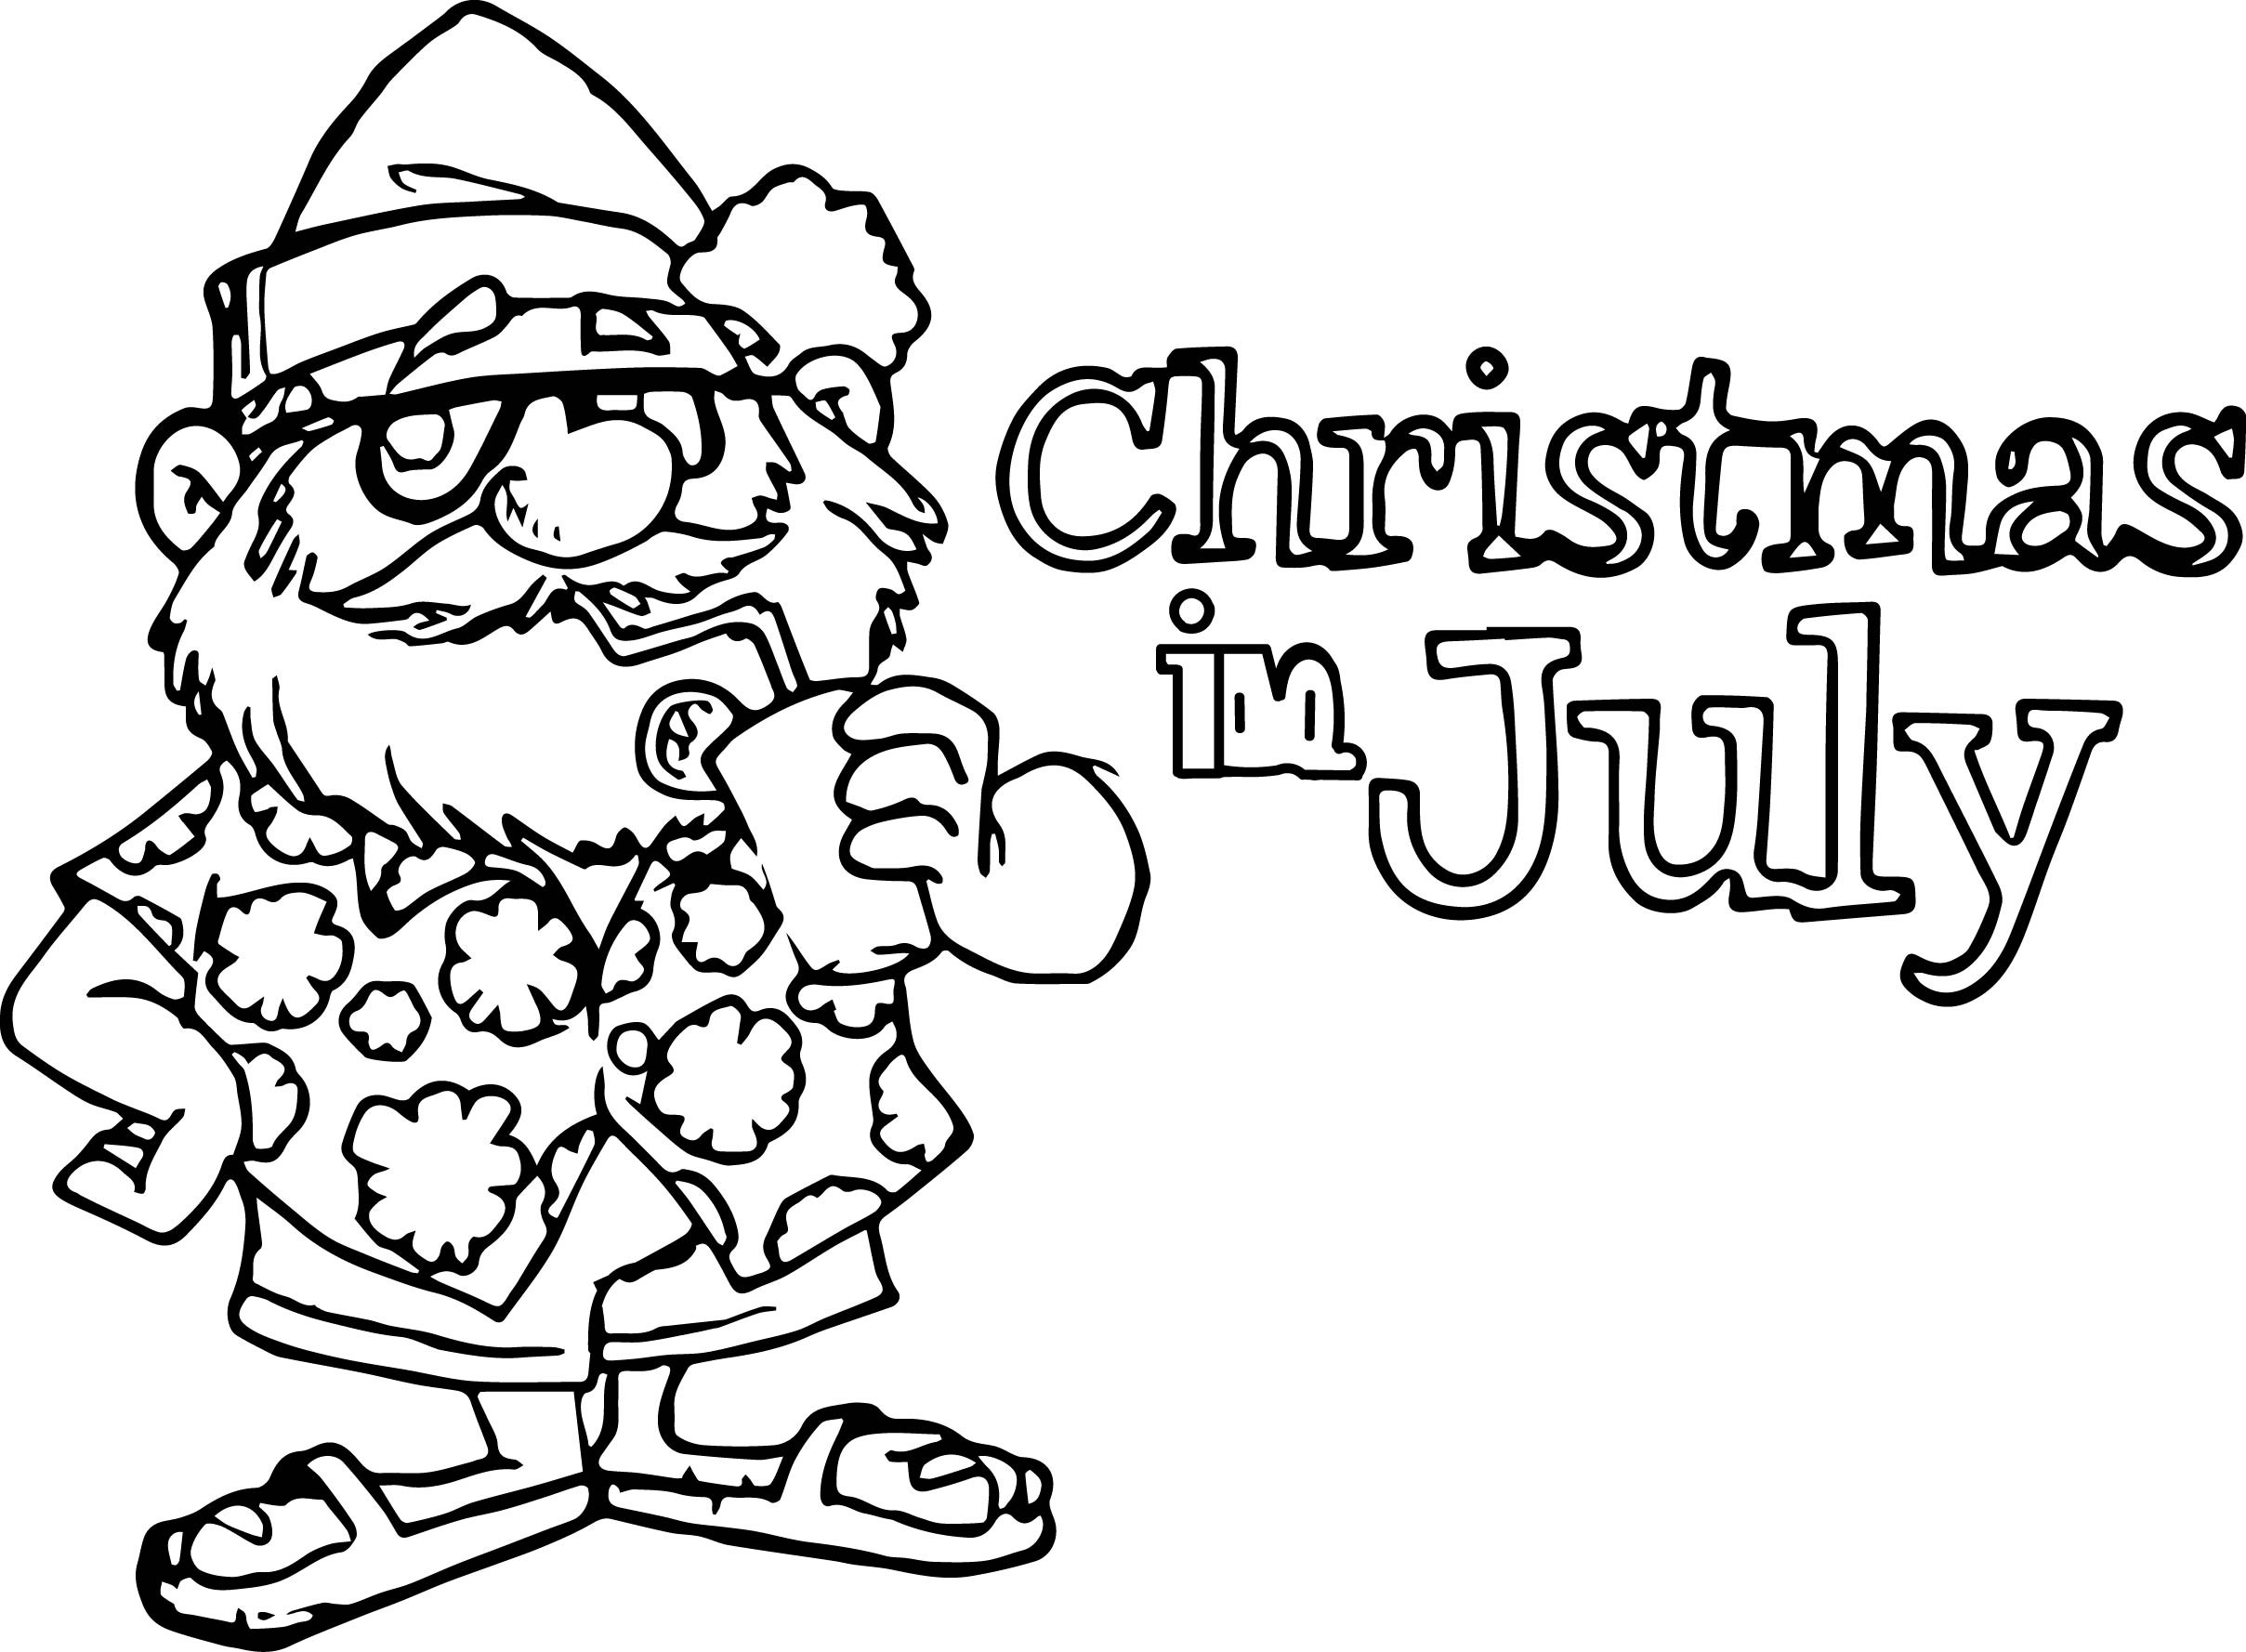 Christmas In July Coloring Pictures With Pages Printable Page For Kids